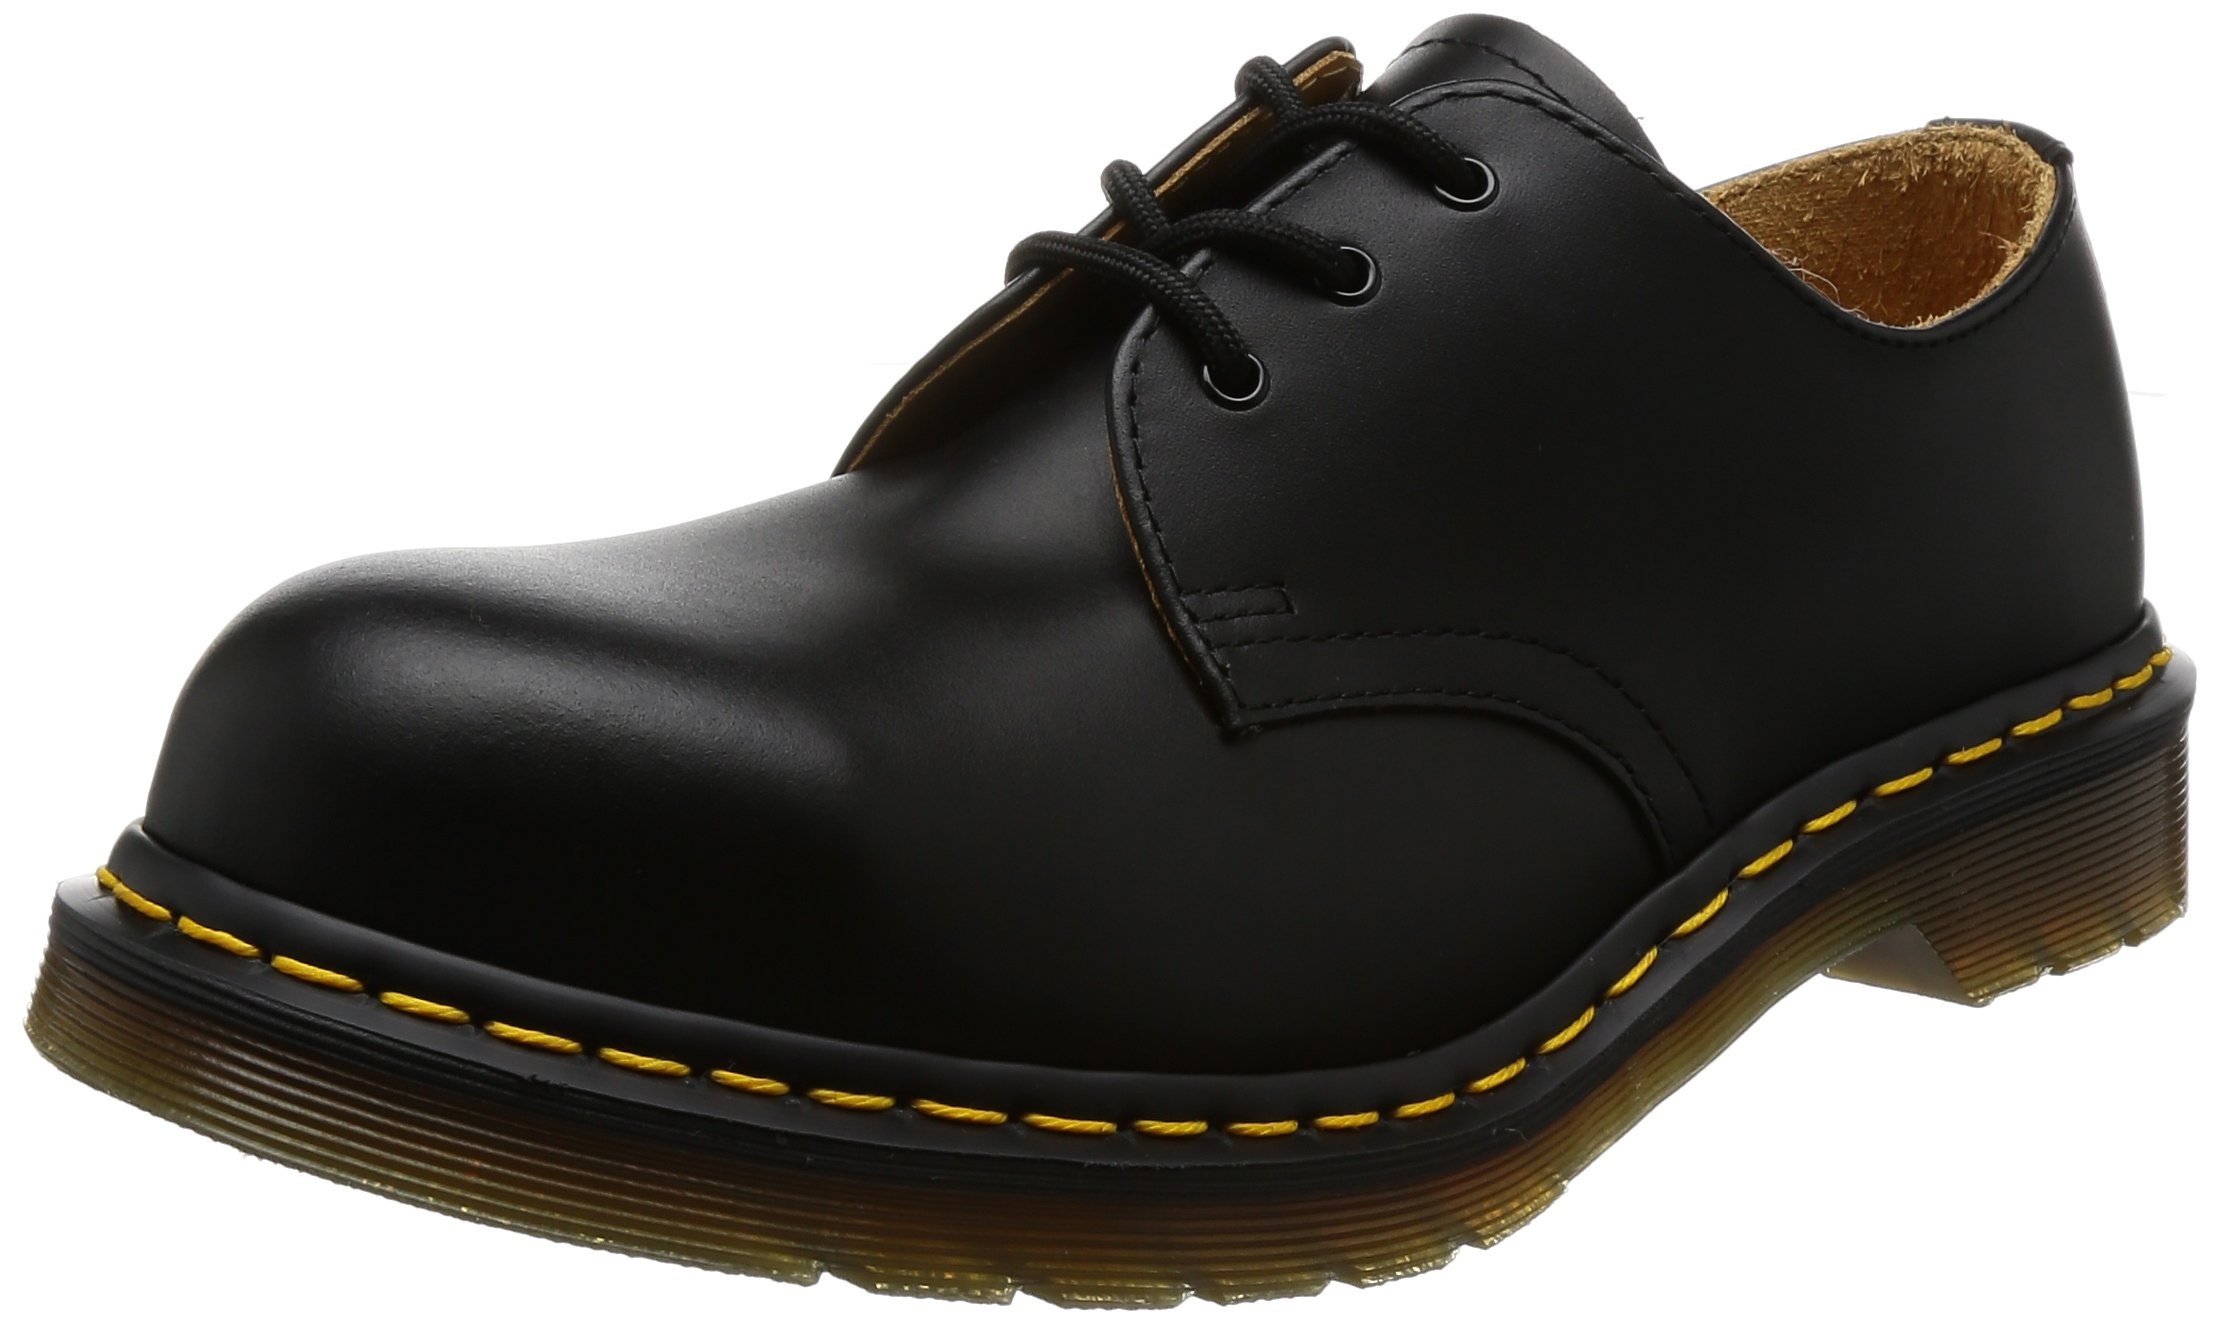 Dr. Martens Original 3 Eye Steel Toe Gibson,Black Fine Haircell,6 UK (US Men's 7 M/Women's 8 M)